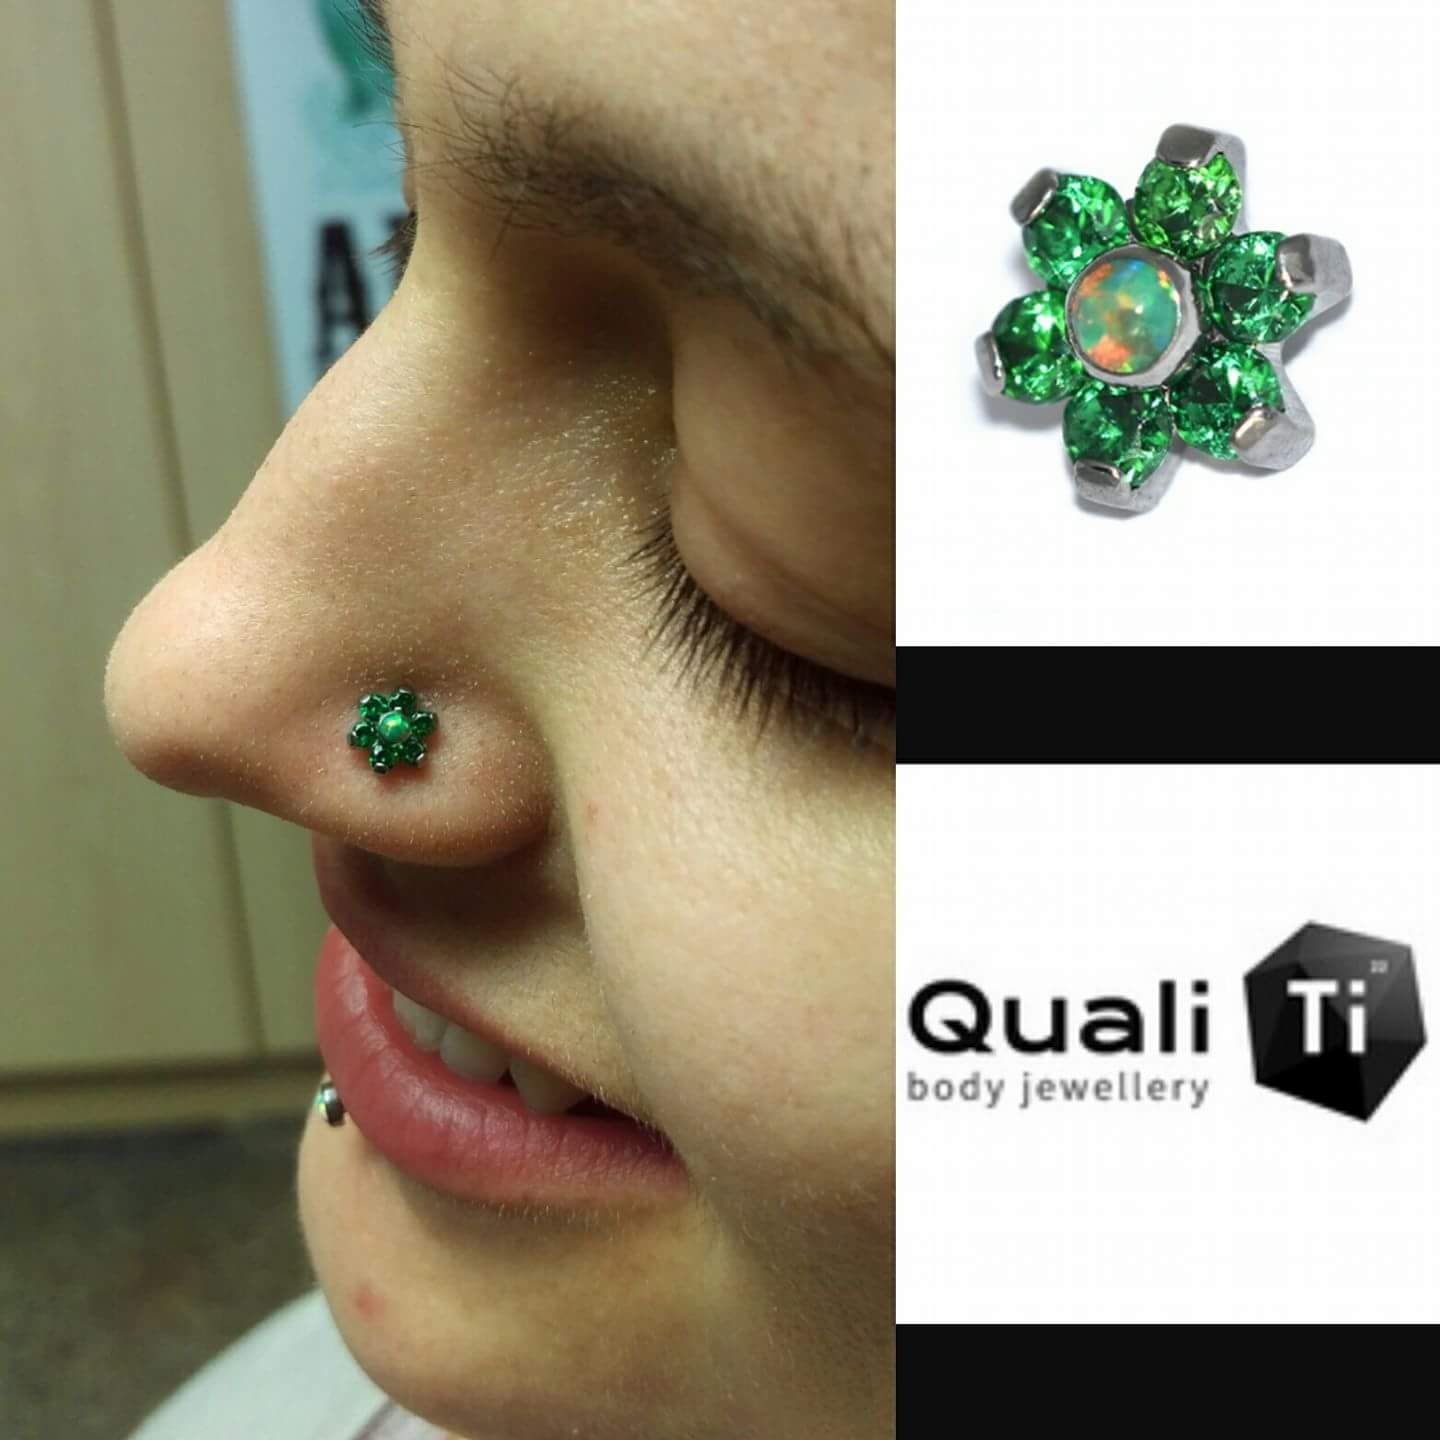 Cute nose piercing   Pleasing NosePiercing Ideas to PerkUp Your Style Quotient